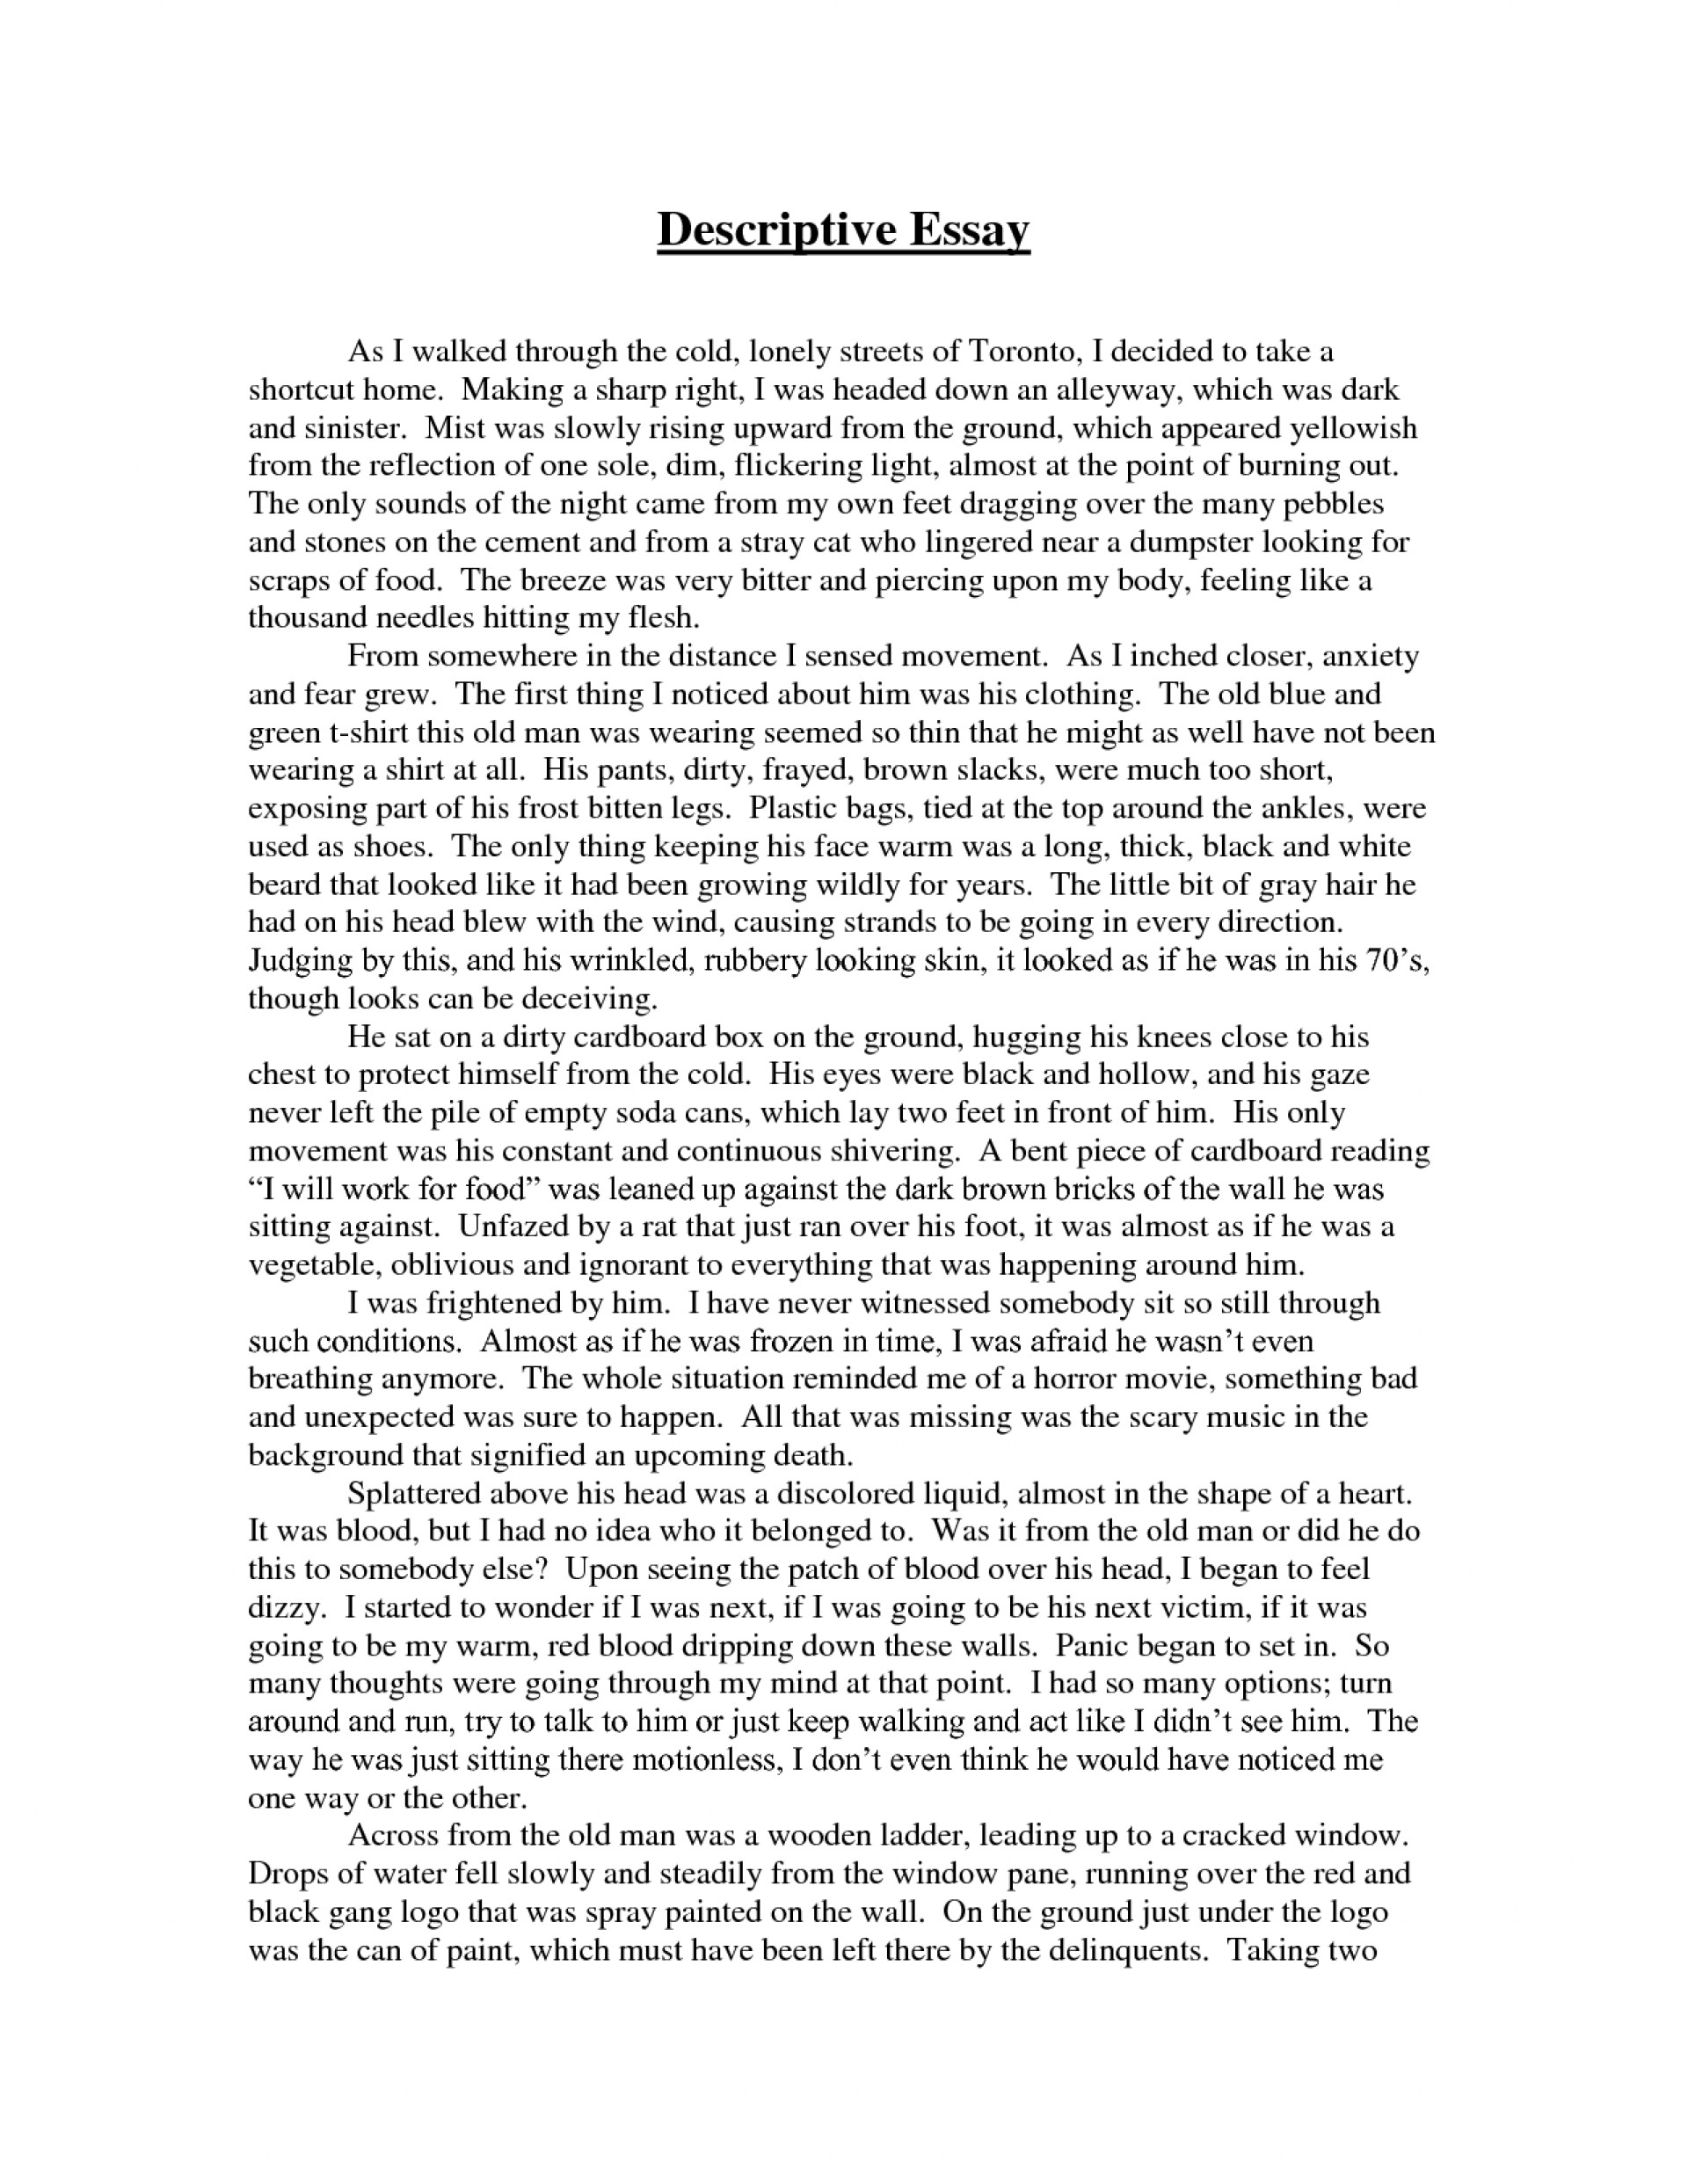 001 Descriptive Essay Example About Place Discriptive Cover Letter For How Write Writing Paragraph To Of In Astounding A Picture Philippines 1920